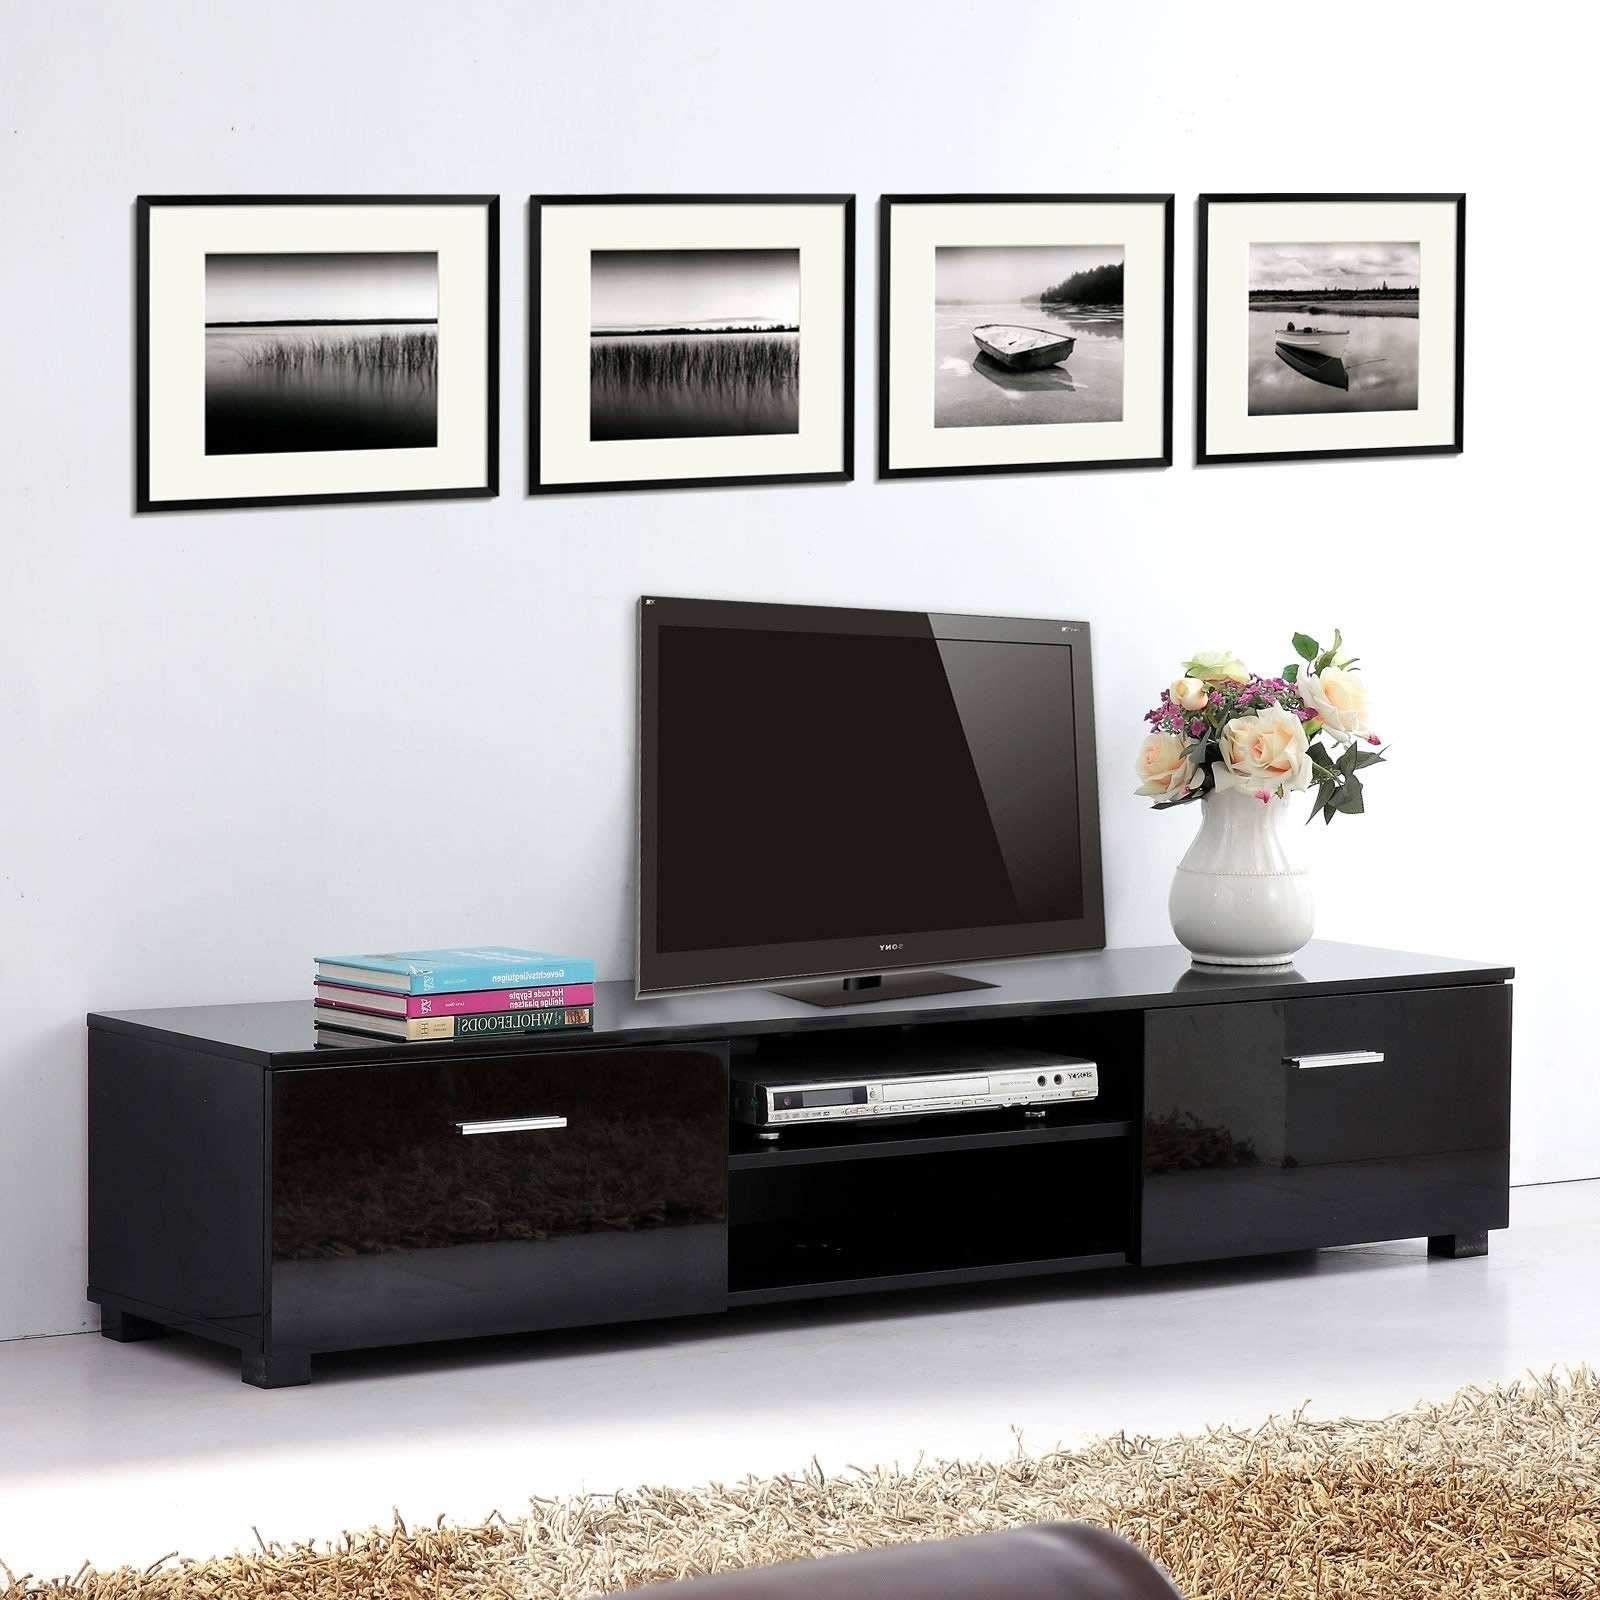 Tv Stands Adjustable Height Tall Stand With Mount Thin Wood Intended For Long Wood Tv Stands (View 13 of 15)